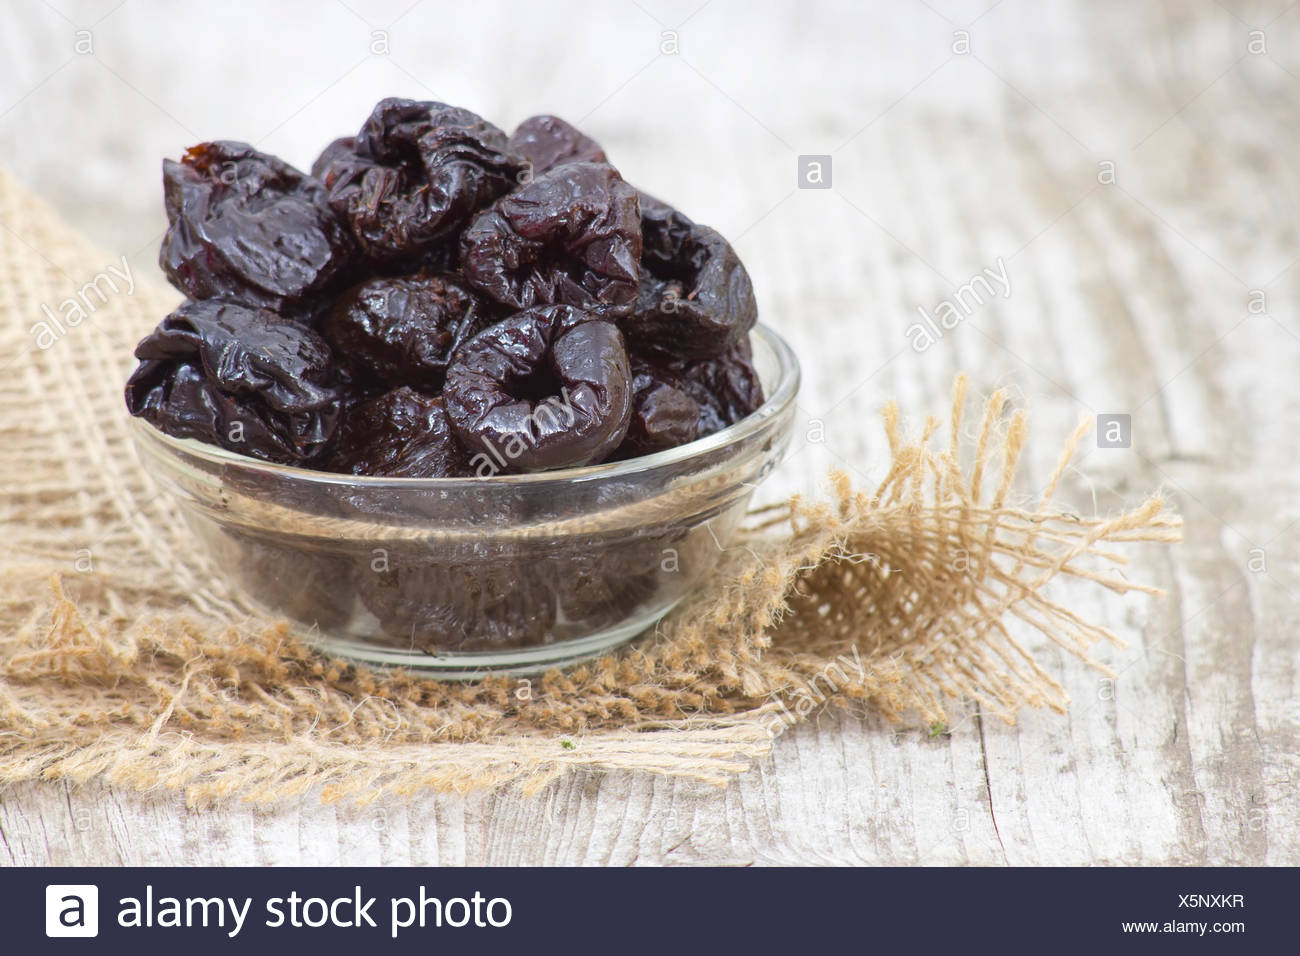 bowl full of dried plums - Stock Image